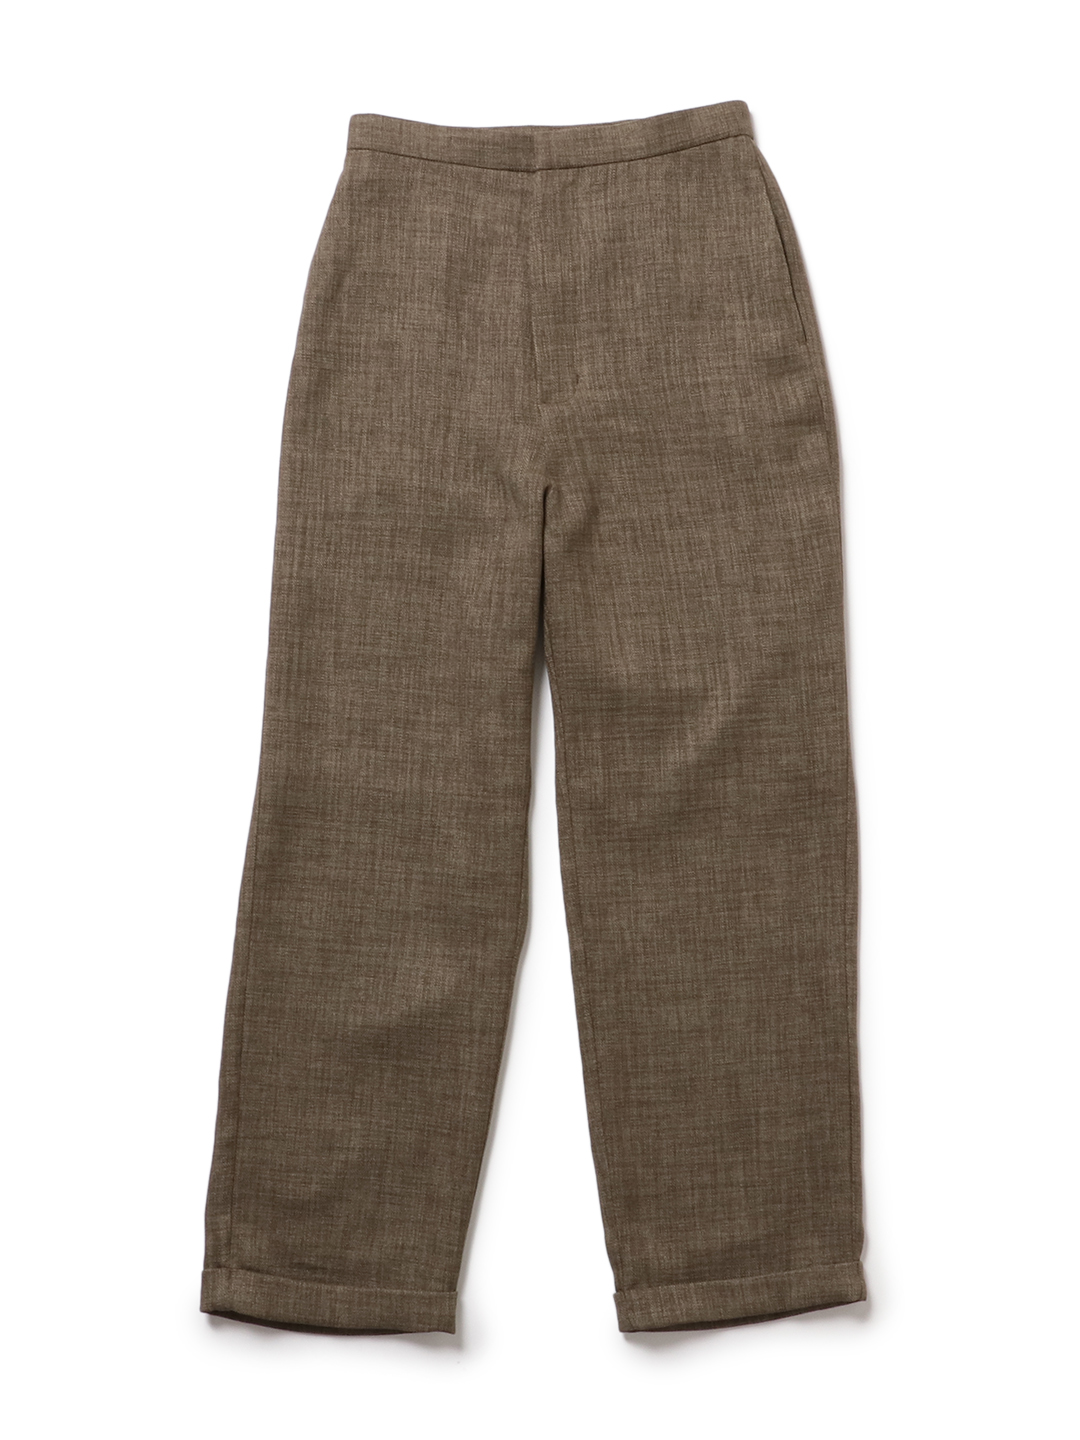 LINEN STYLE TAPERED PT